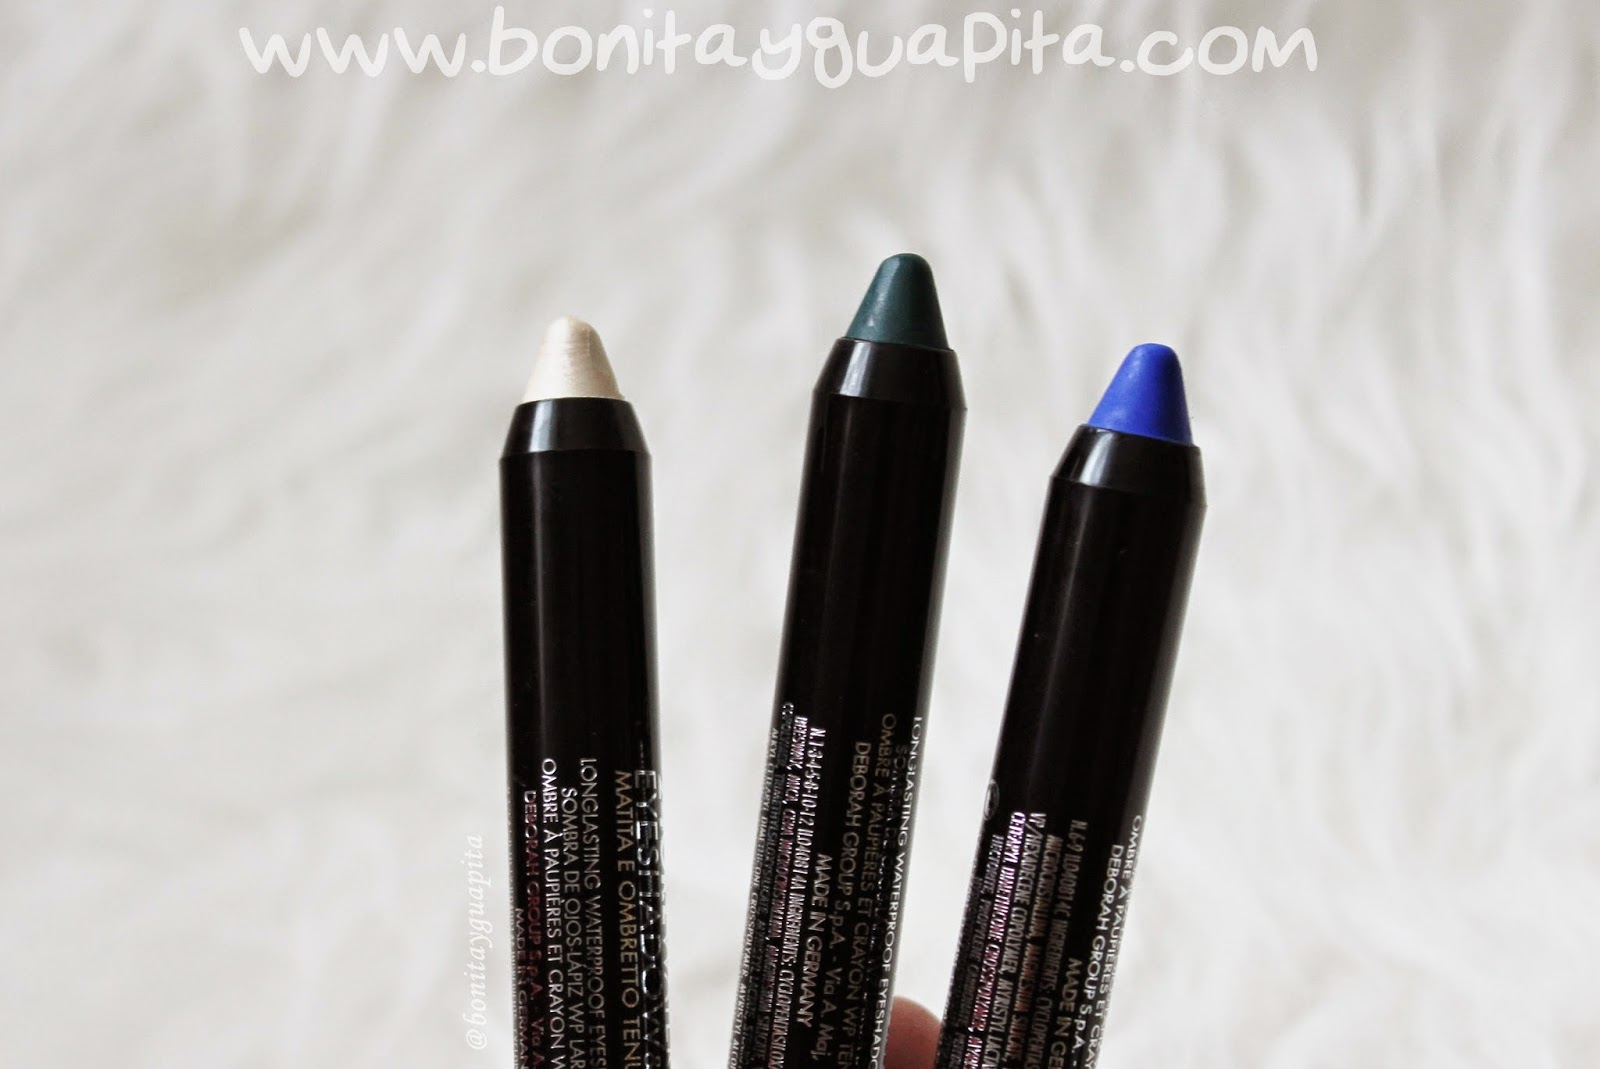 24 ore waterproof eyeshadow & pencil 01 08 09